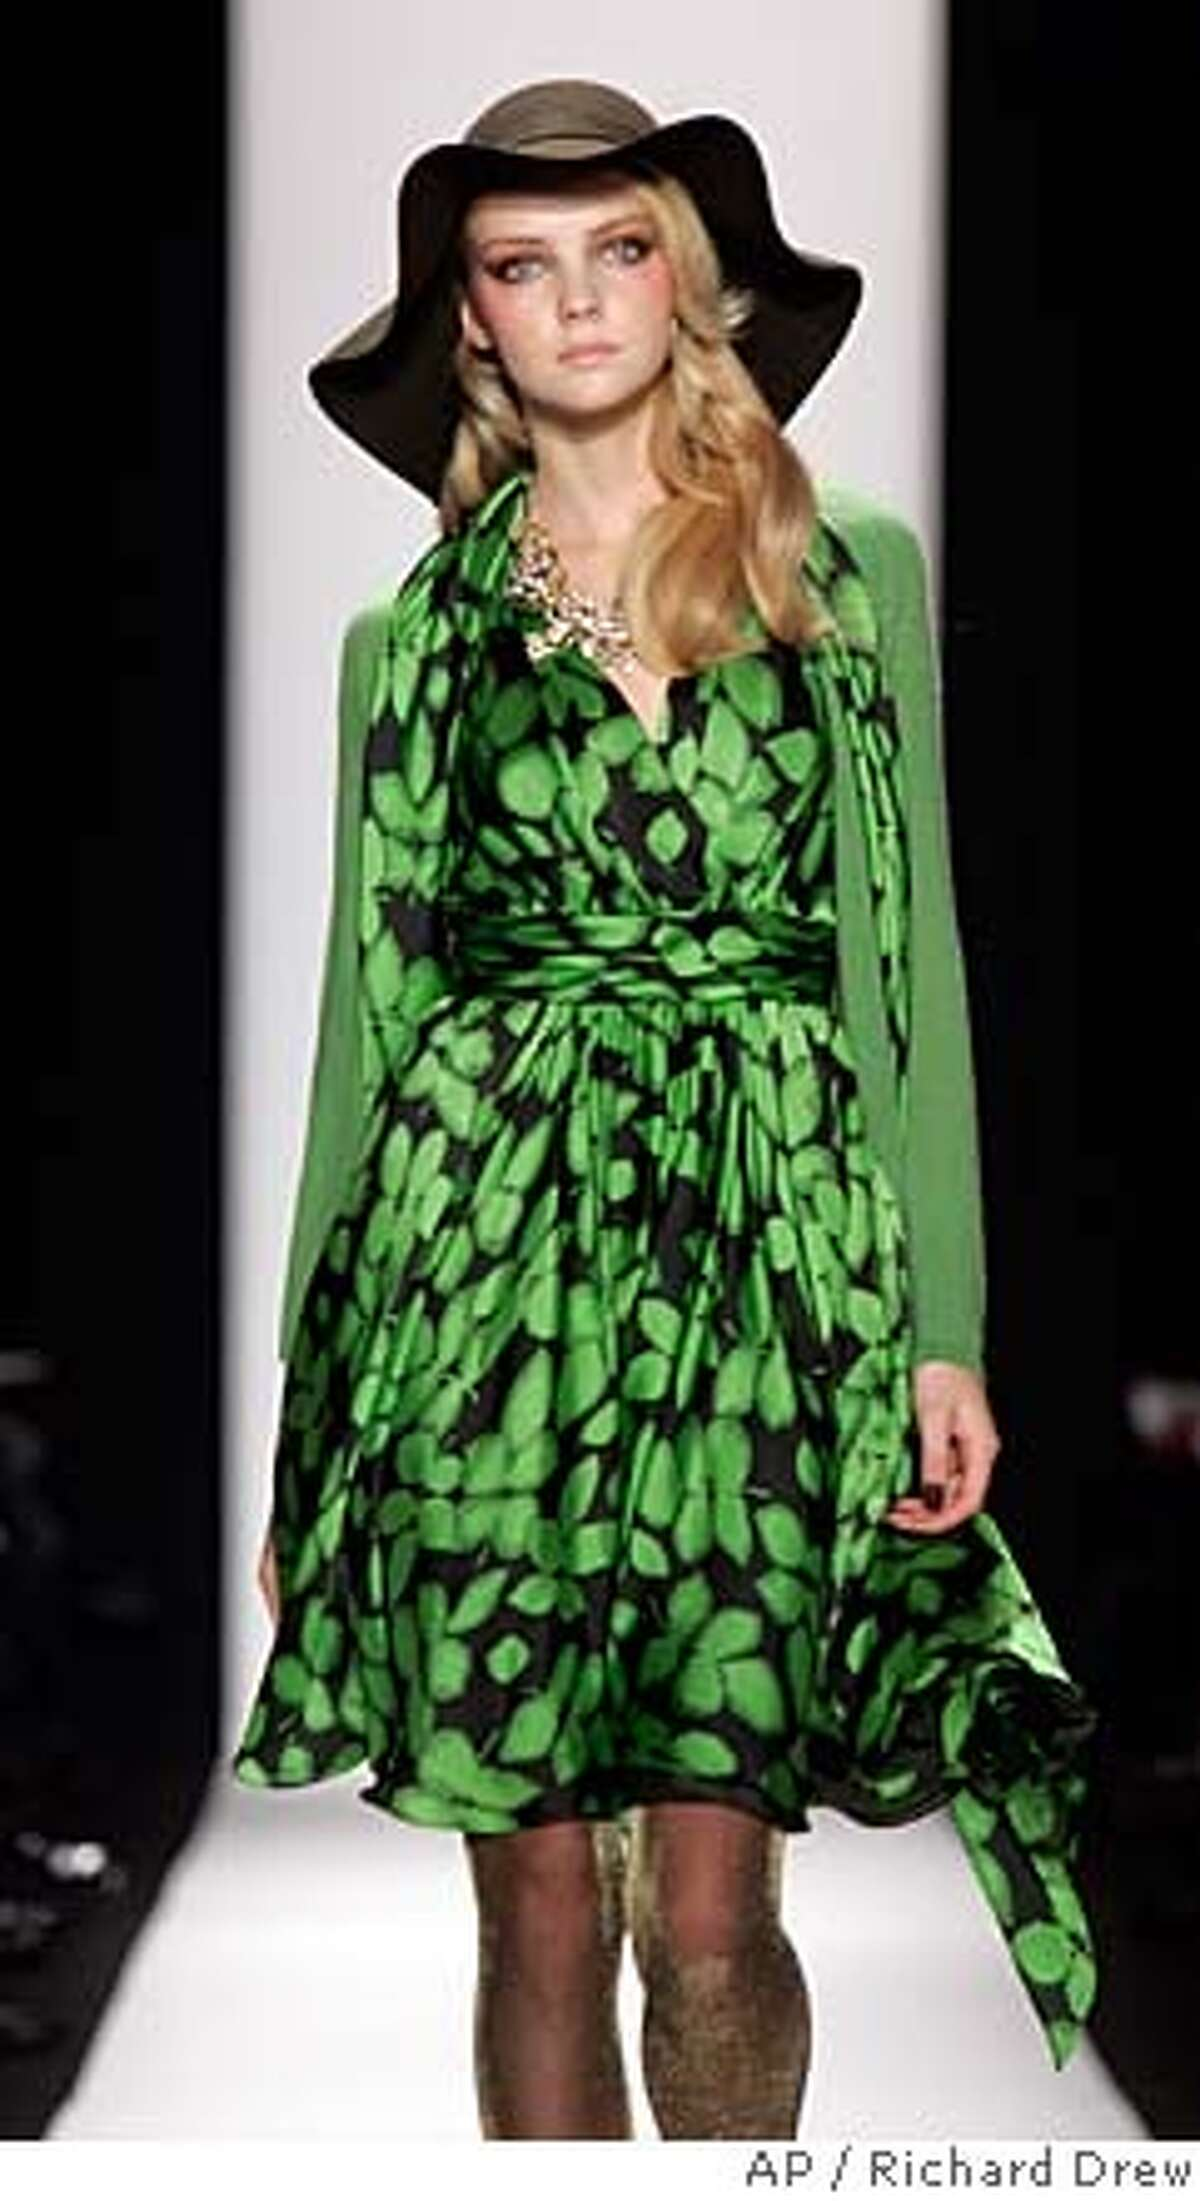 The fall 2008 collection of Badgley Mischka is modeled during Fashion Week in New York Tuesday, Feb 5, 2008. (AP Photo/Richard Drew)